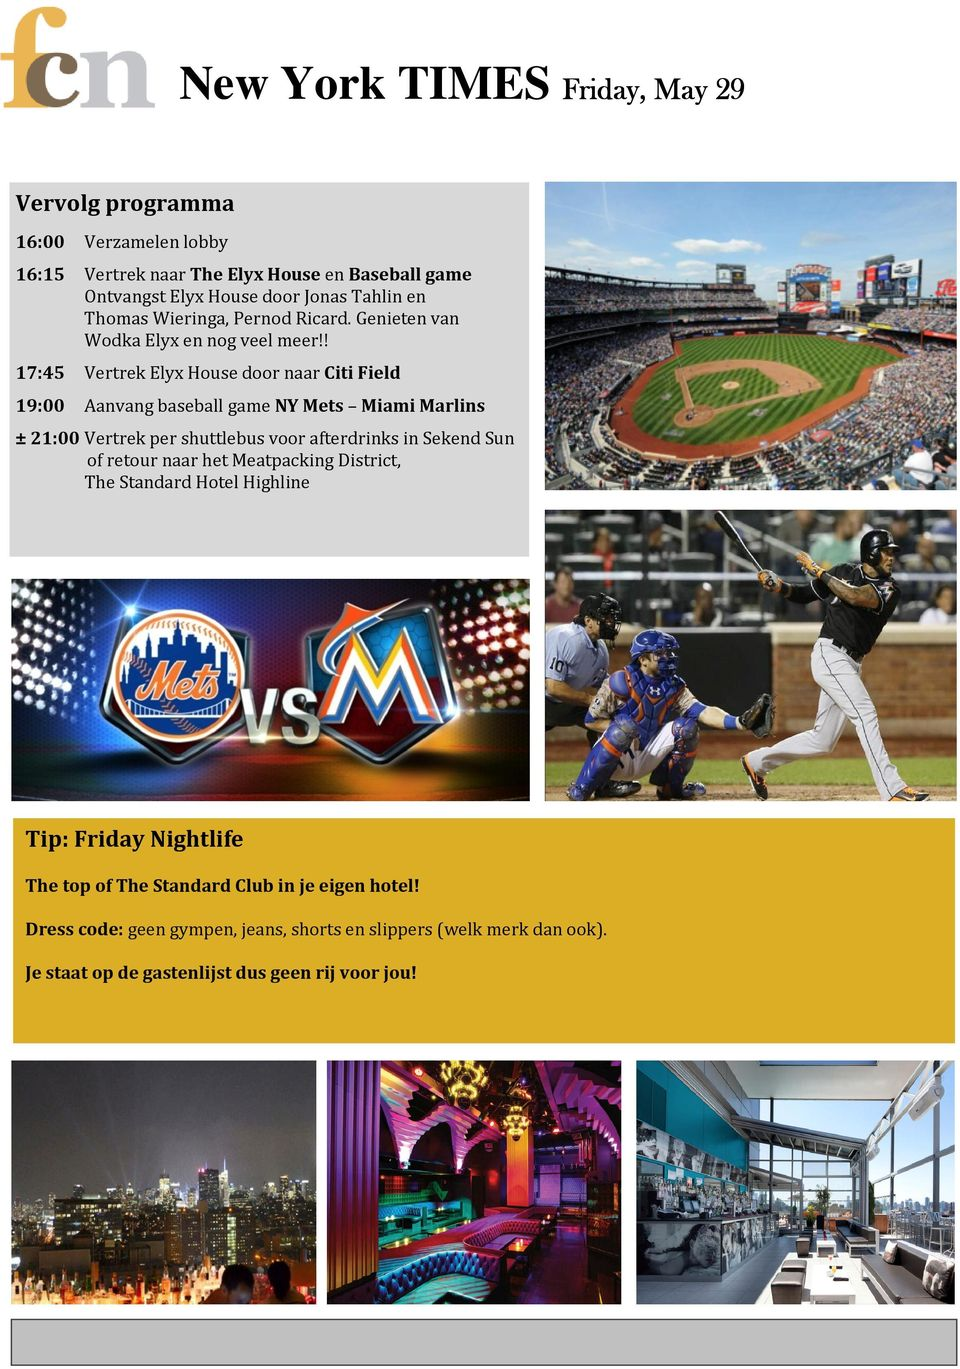 ! 17:45 Vertrek Elyx House door naar Citi Field 19:00 Aanvang baseball game NY Mets Miami Marlins ± 21:00 Vertrek per shuttlebus voor afterdrinks in Sekend Sun of